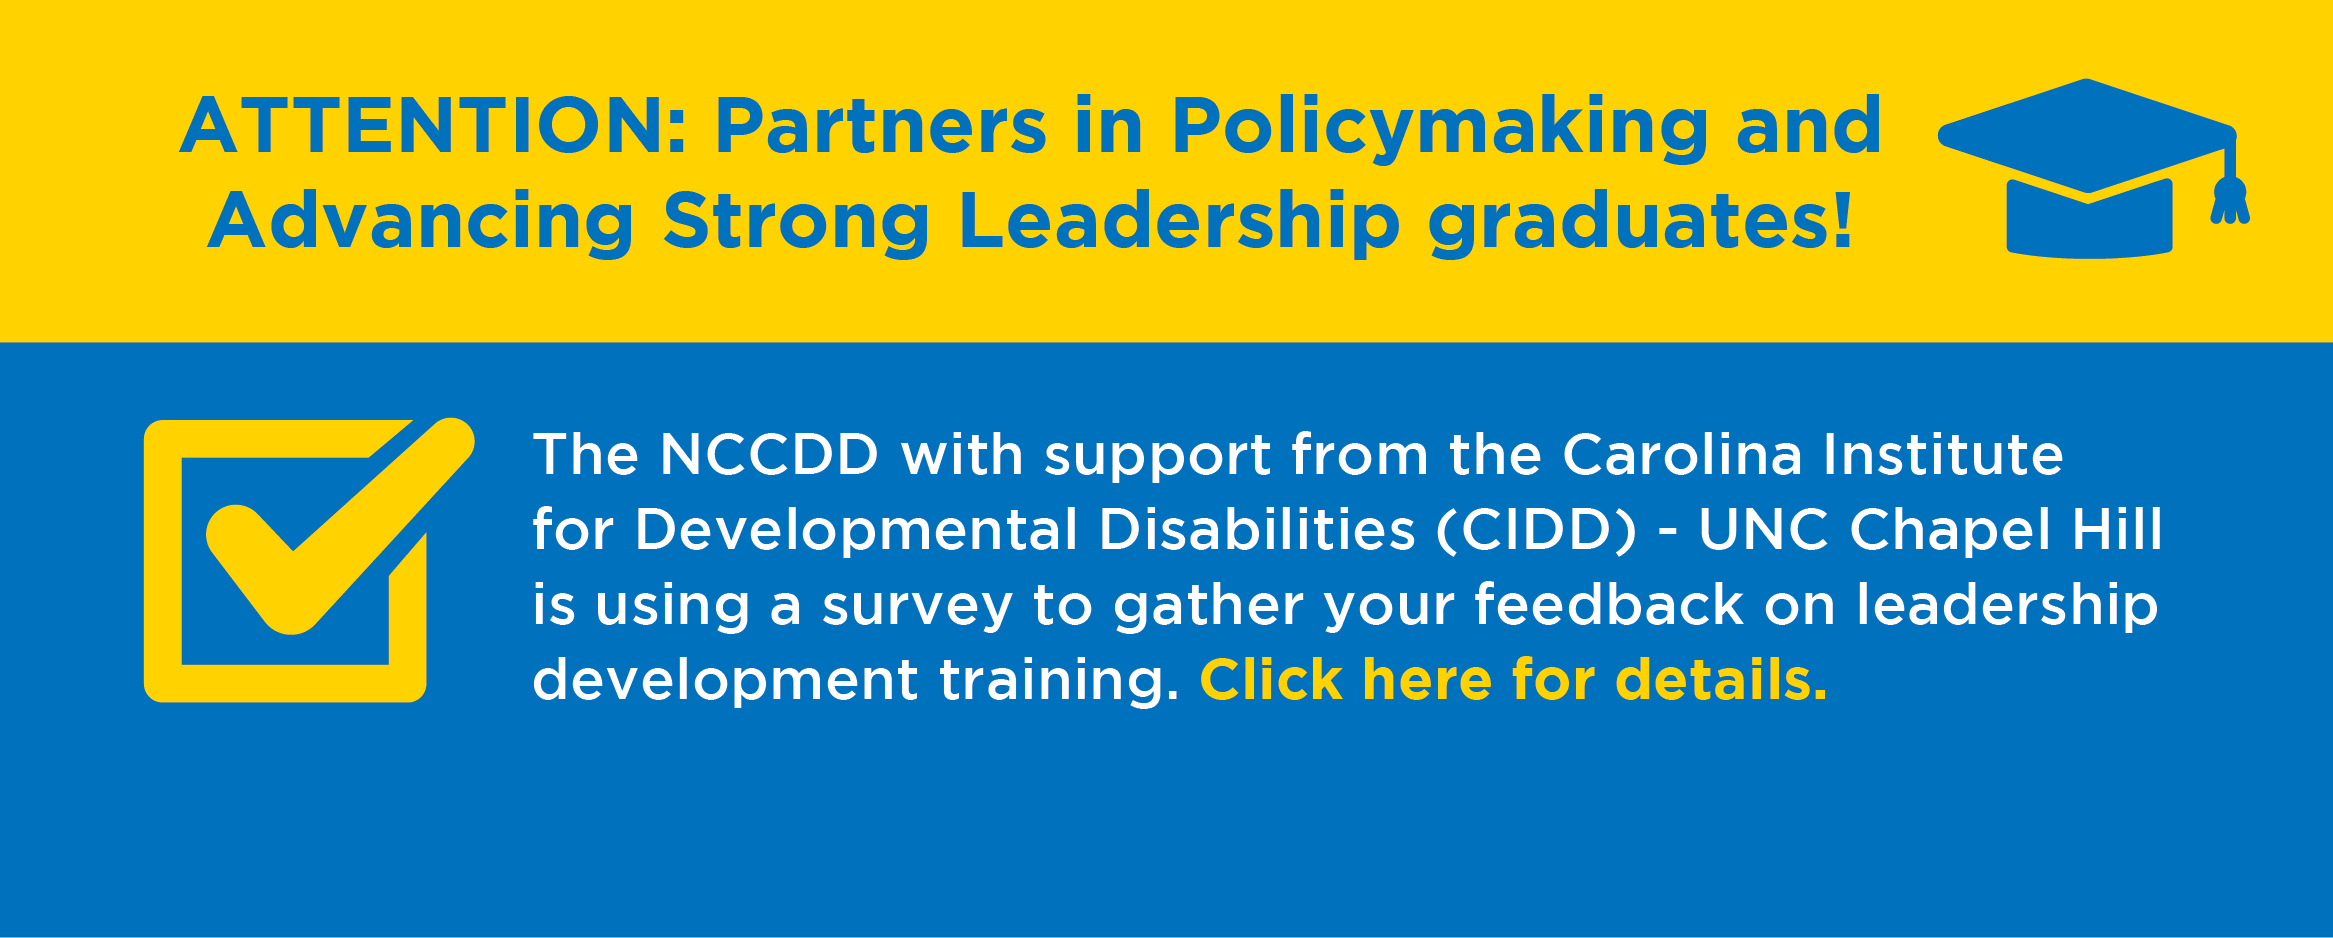 aATTENTION: Partners in Policymaking and Advancing Strong Leadership graduates!  The NCCDD with support from the Carolina Institute for Developmental Disabilities (CIDD) - UNC Chapel Hill is using a survey to gather your feedback on leadership develop